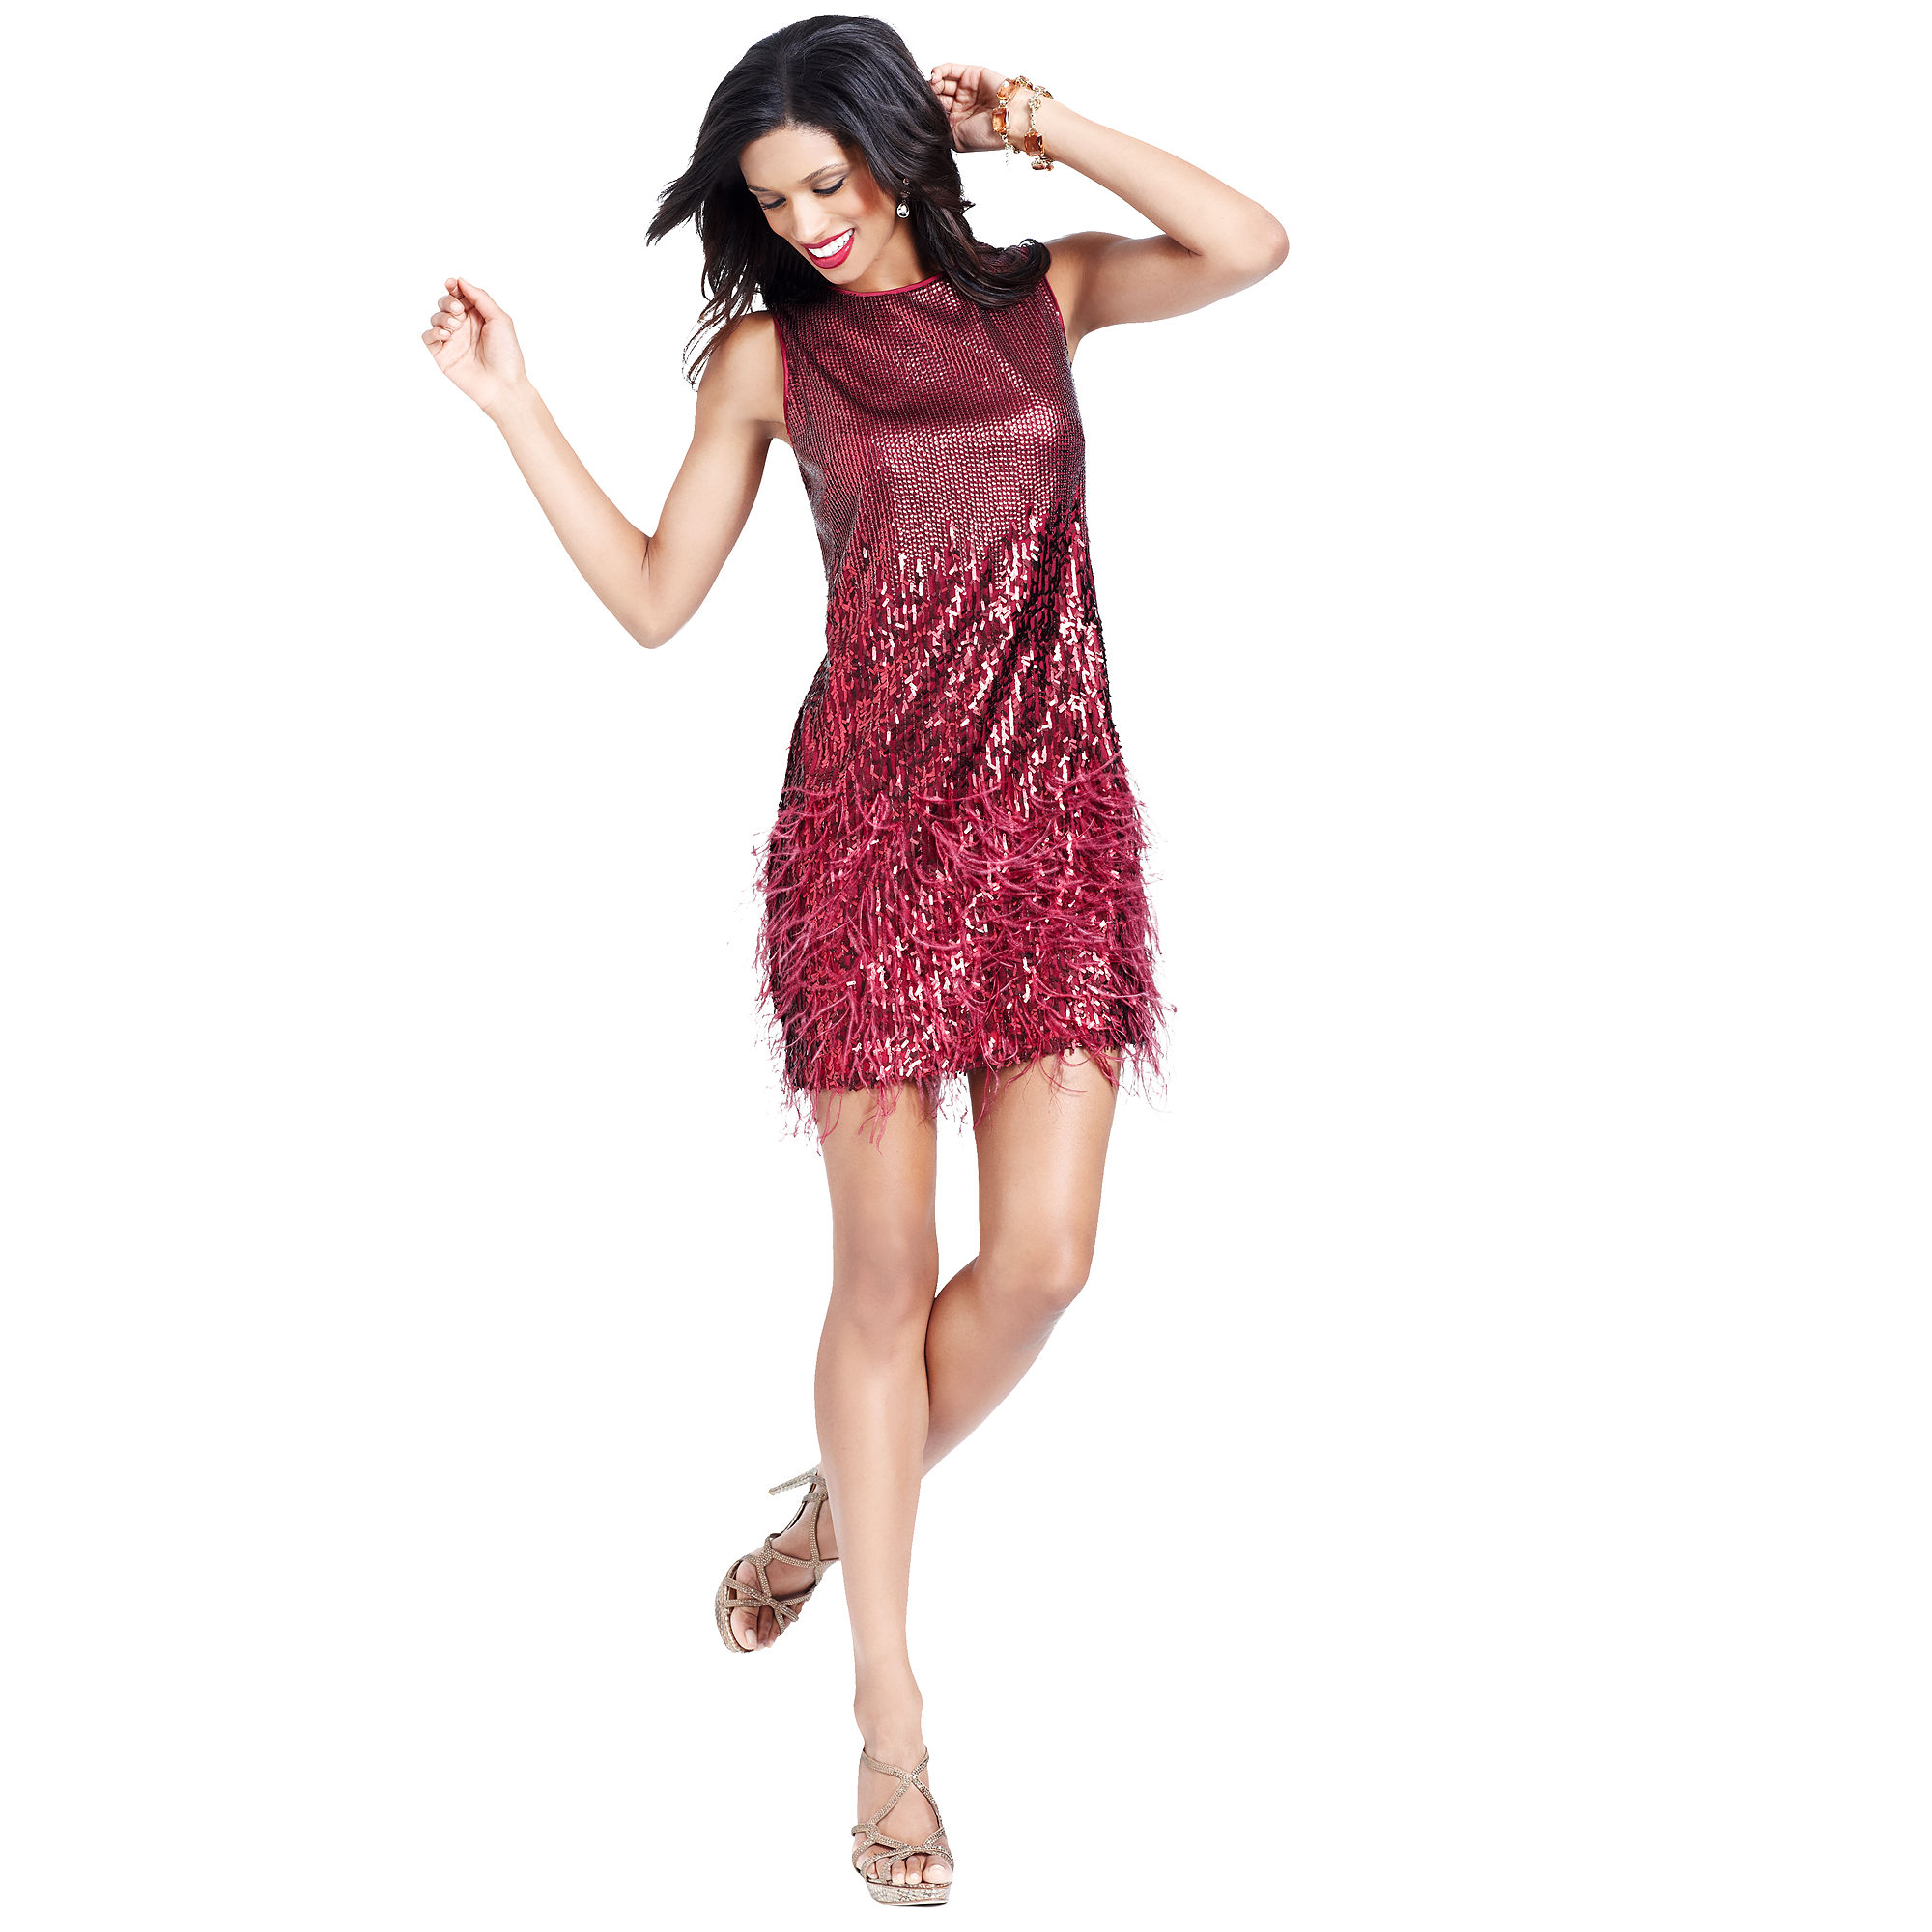 Jessica simpson Sleeveless Sequin Feather Cocktail Dress in Red - Lyst